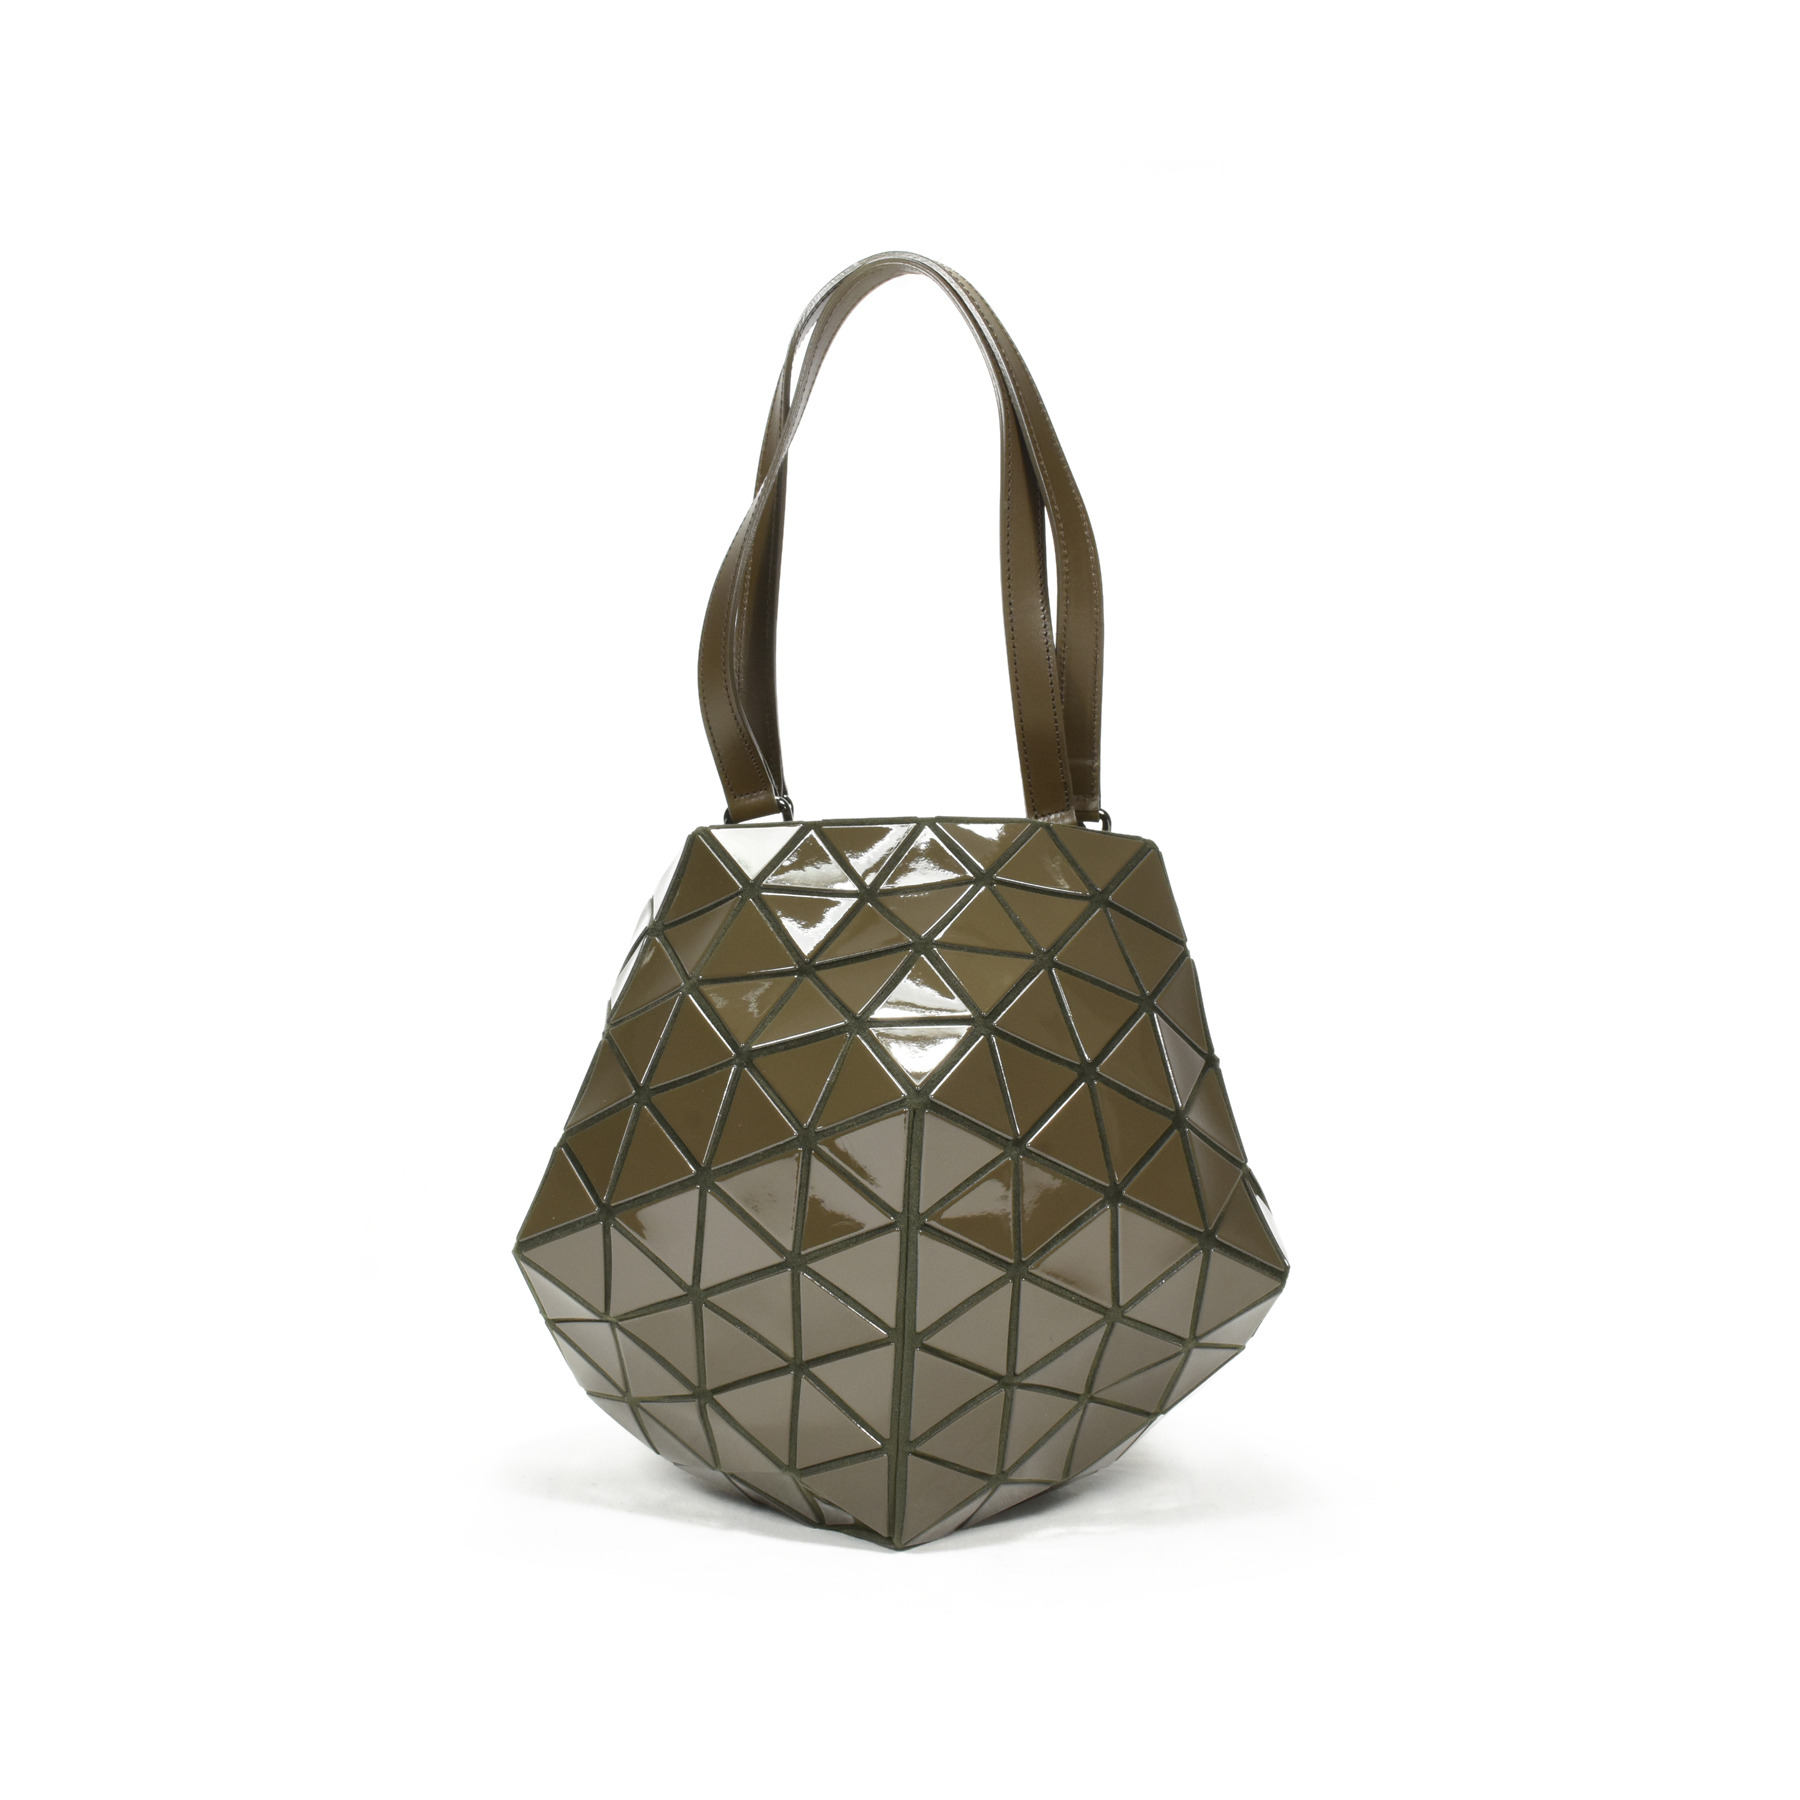 86412322cd8 Authentic Pre Owned Issey Miyake Planet Shoulder Bag (PSS-355-00002)   THE  FIFTH COLLECTION®